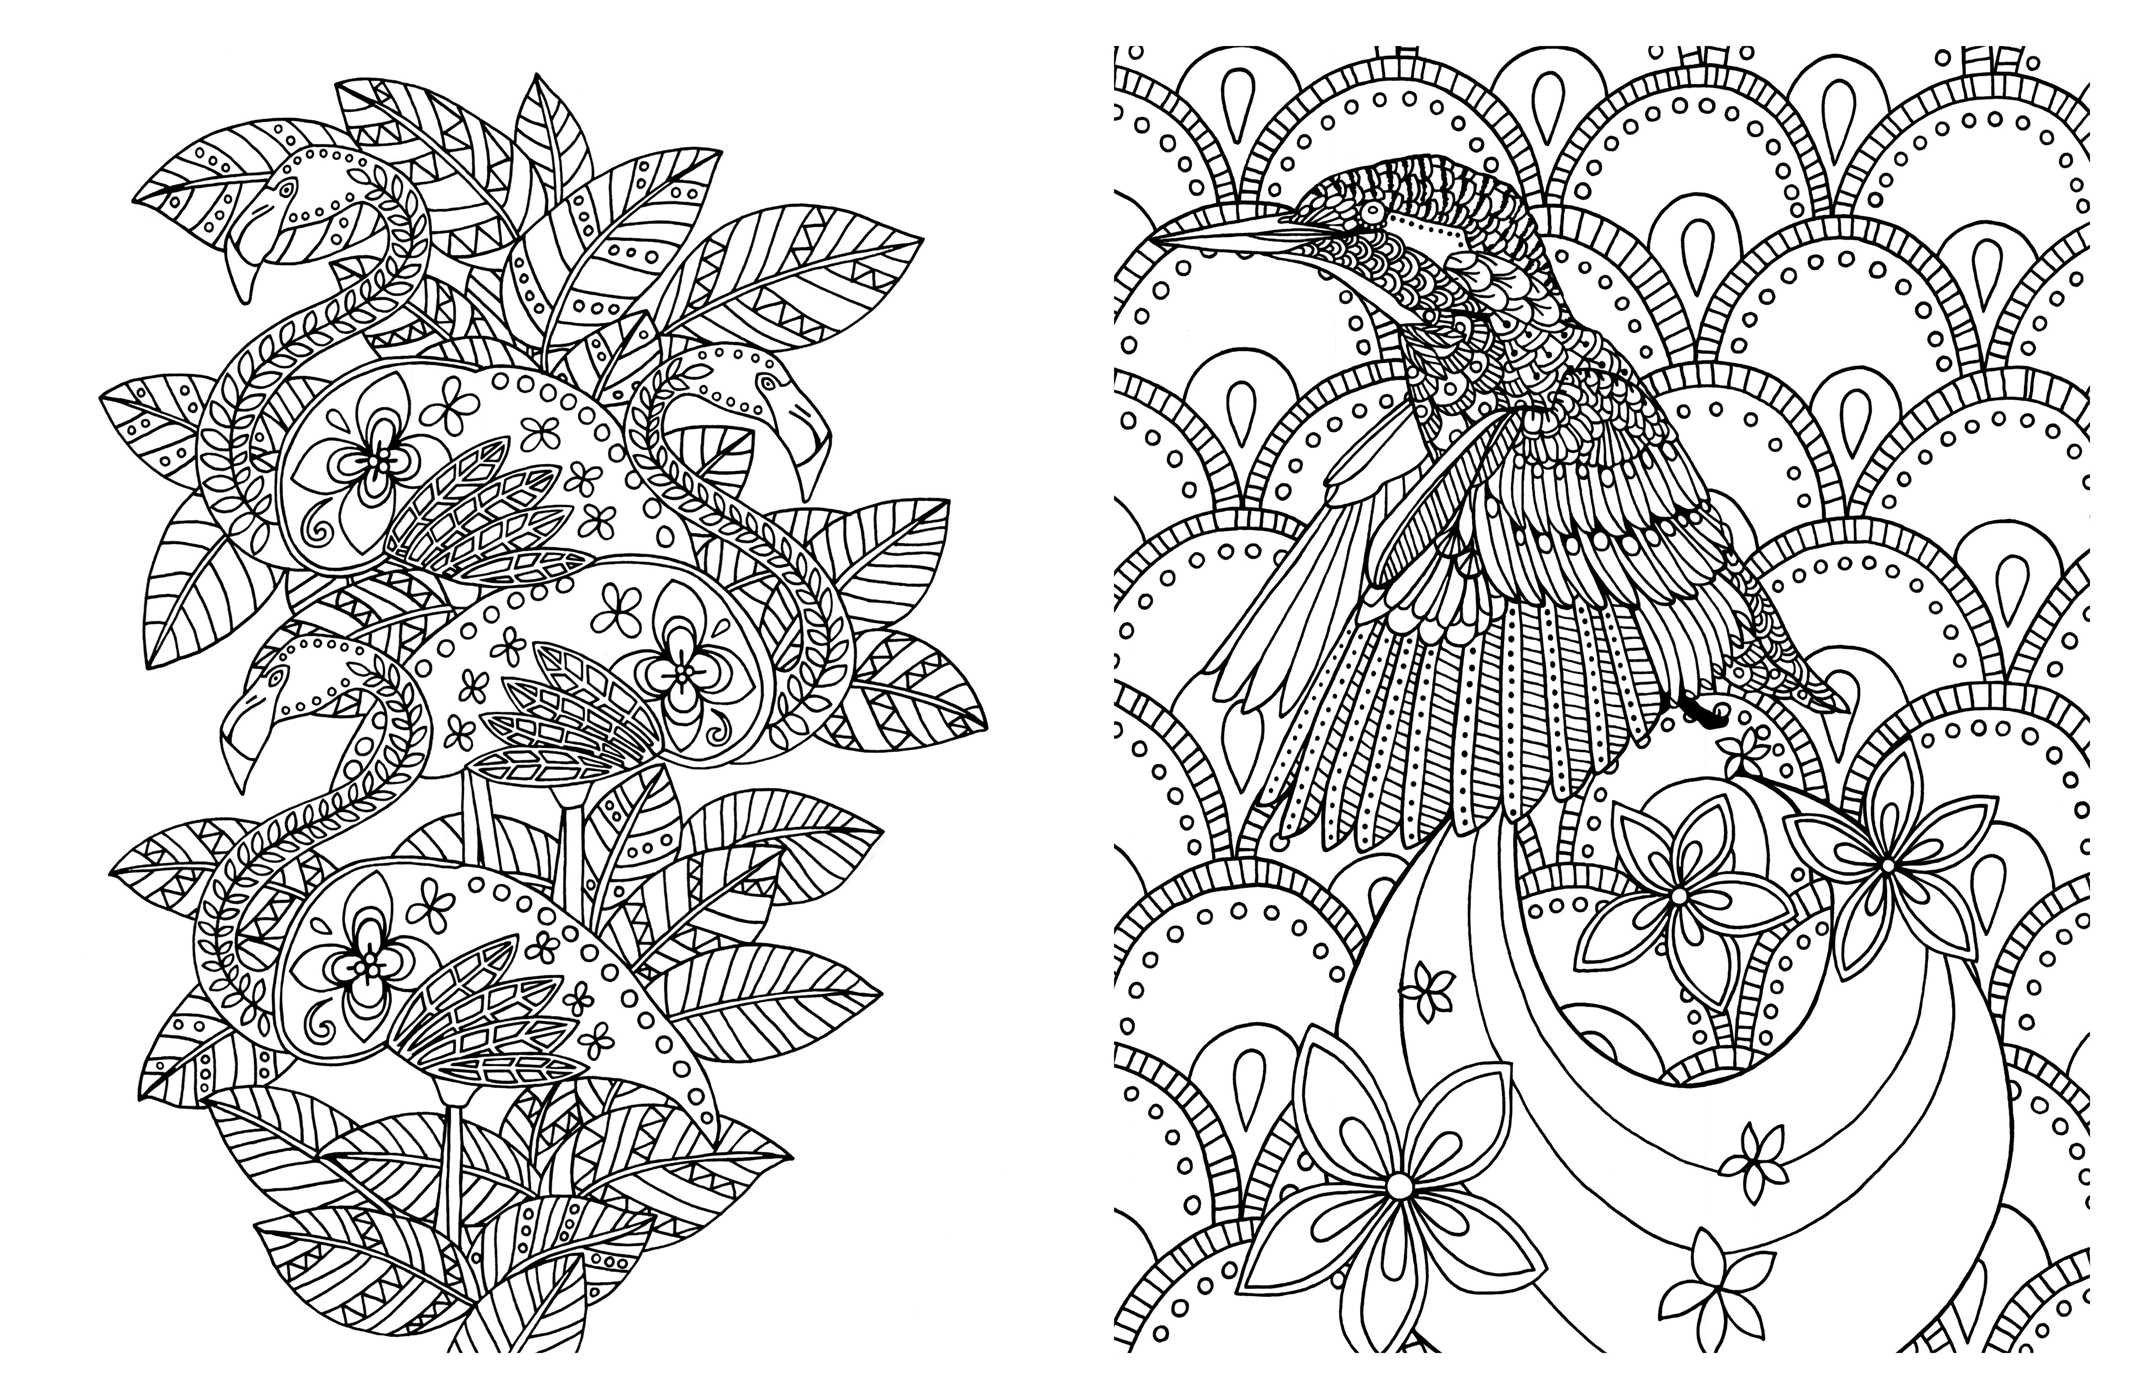 Posh Adult Coloring Book Soothing Designs For Fun Relaxation Books Amazoncouk Andrews McMeel Publishing 0050837348899